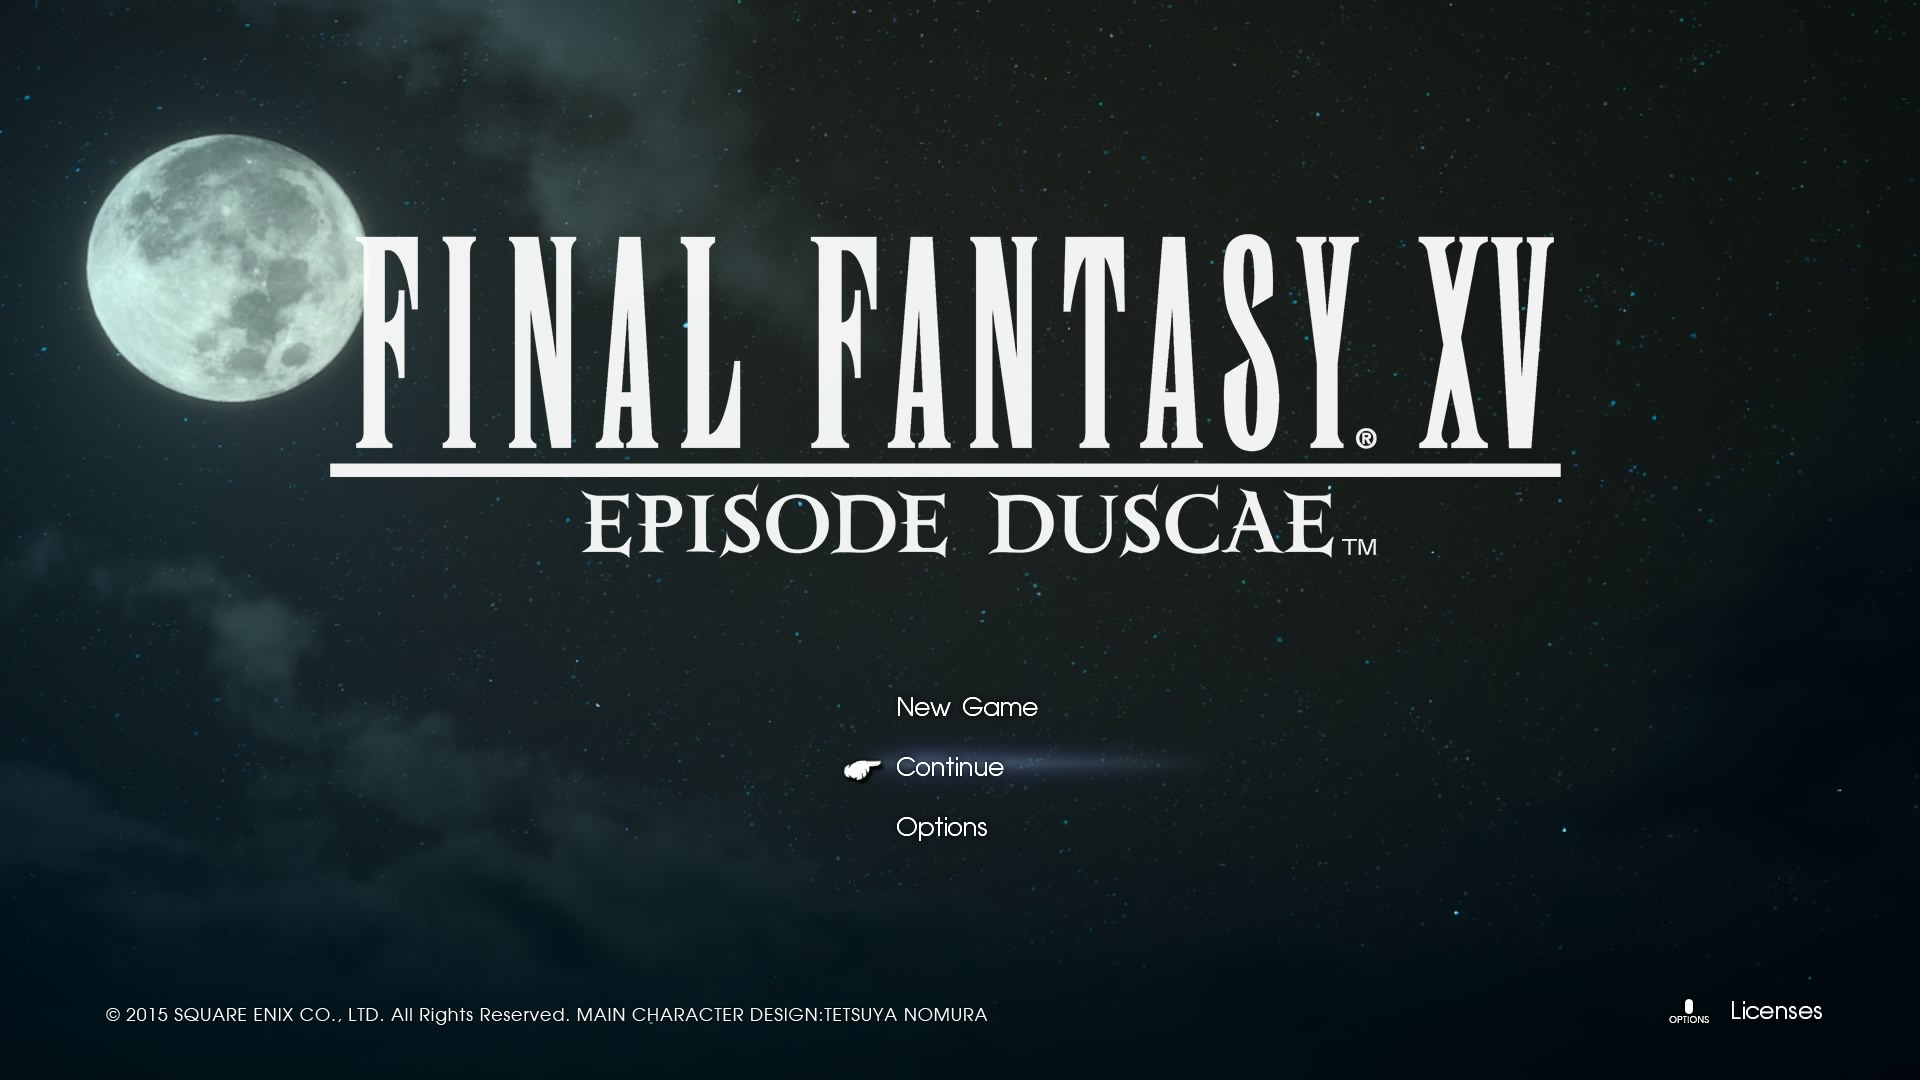 FINAL FANTASY XV EPISODE DUSCAE_20150318133547